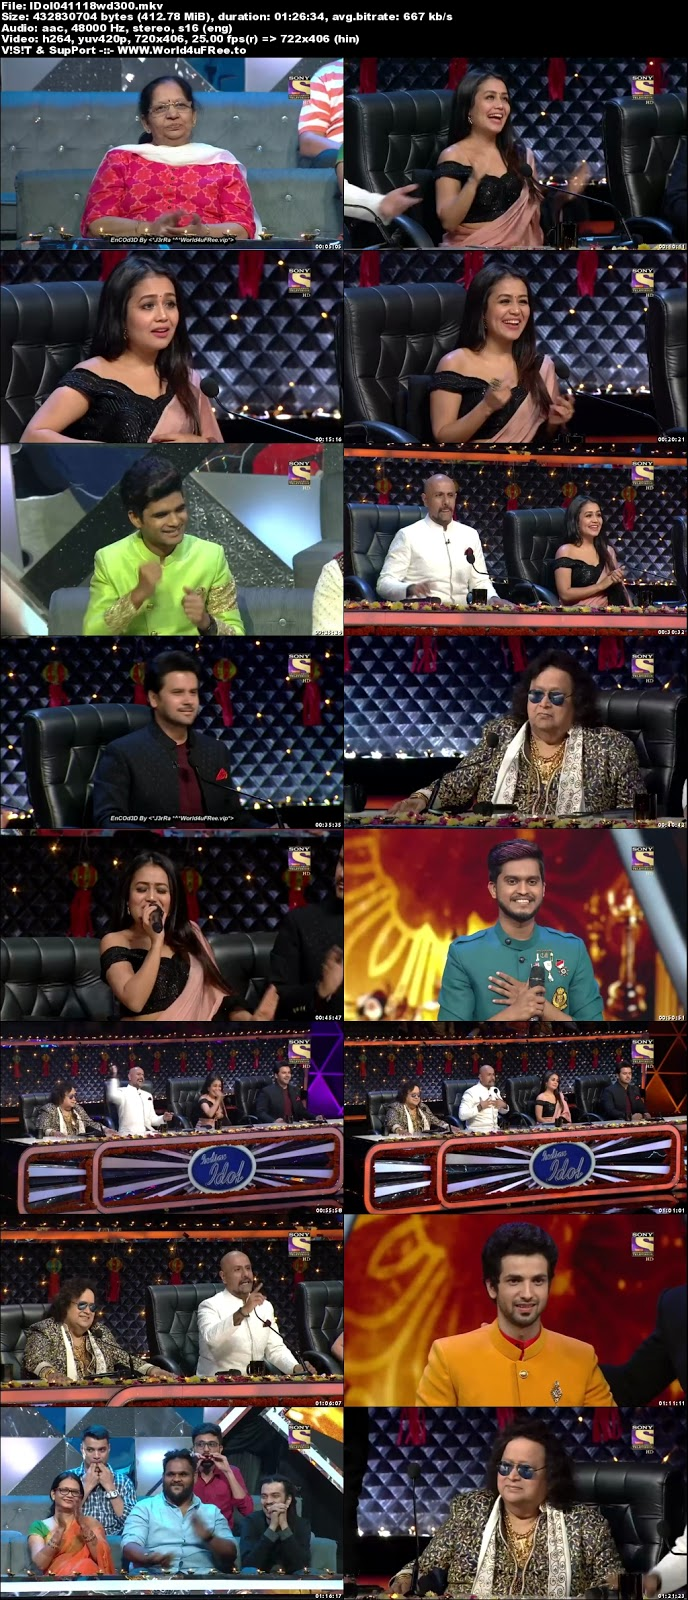 Indian Idol Season 10 04 November 2018 HDTV 480p 300Mb  world4ufree.vip tv show Indian Idol Season 10 hindi tv show Indian Idol Season 10  Sony Set  tv show compressed small size free download or watch online at world4ufree.vip